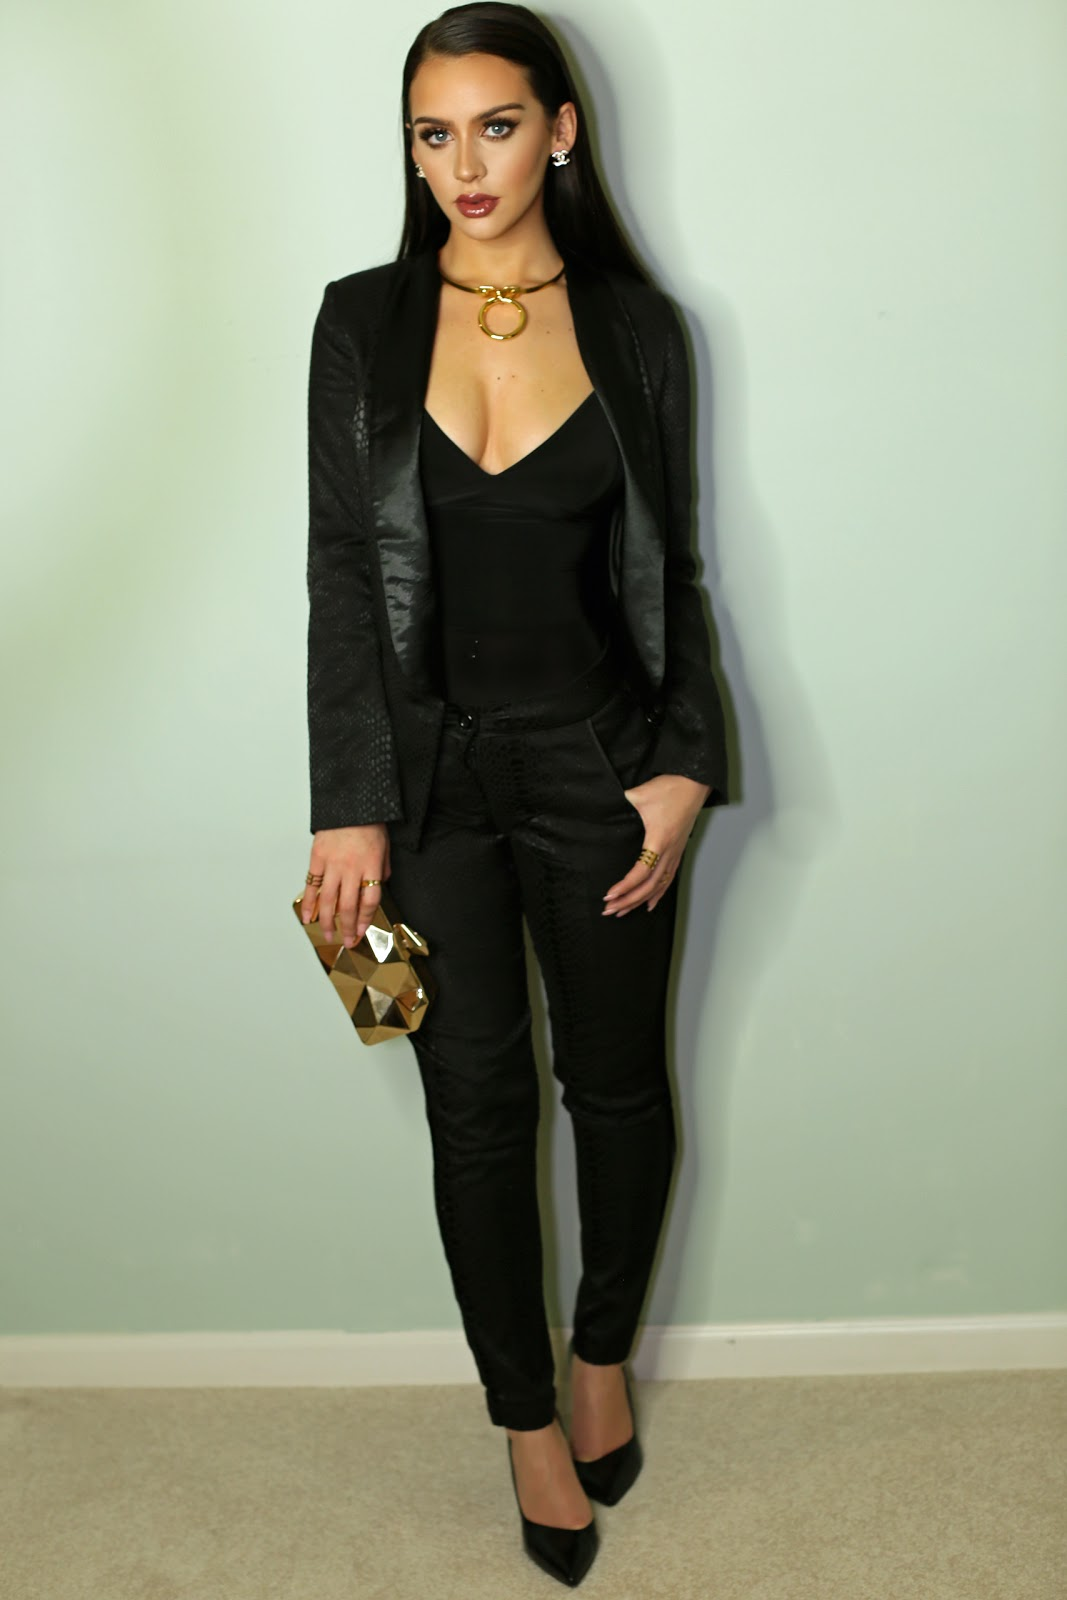 all black party outfit ideas - photo #2